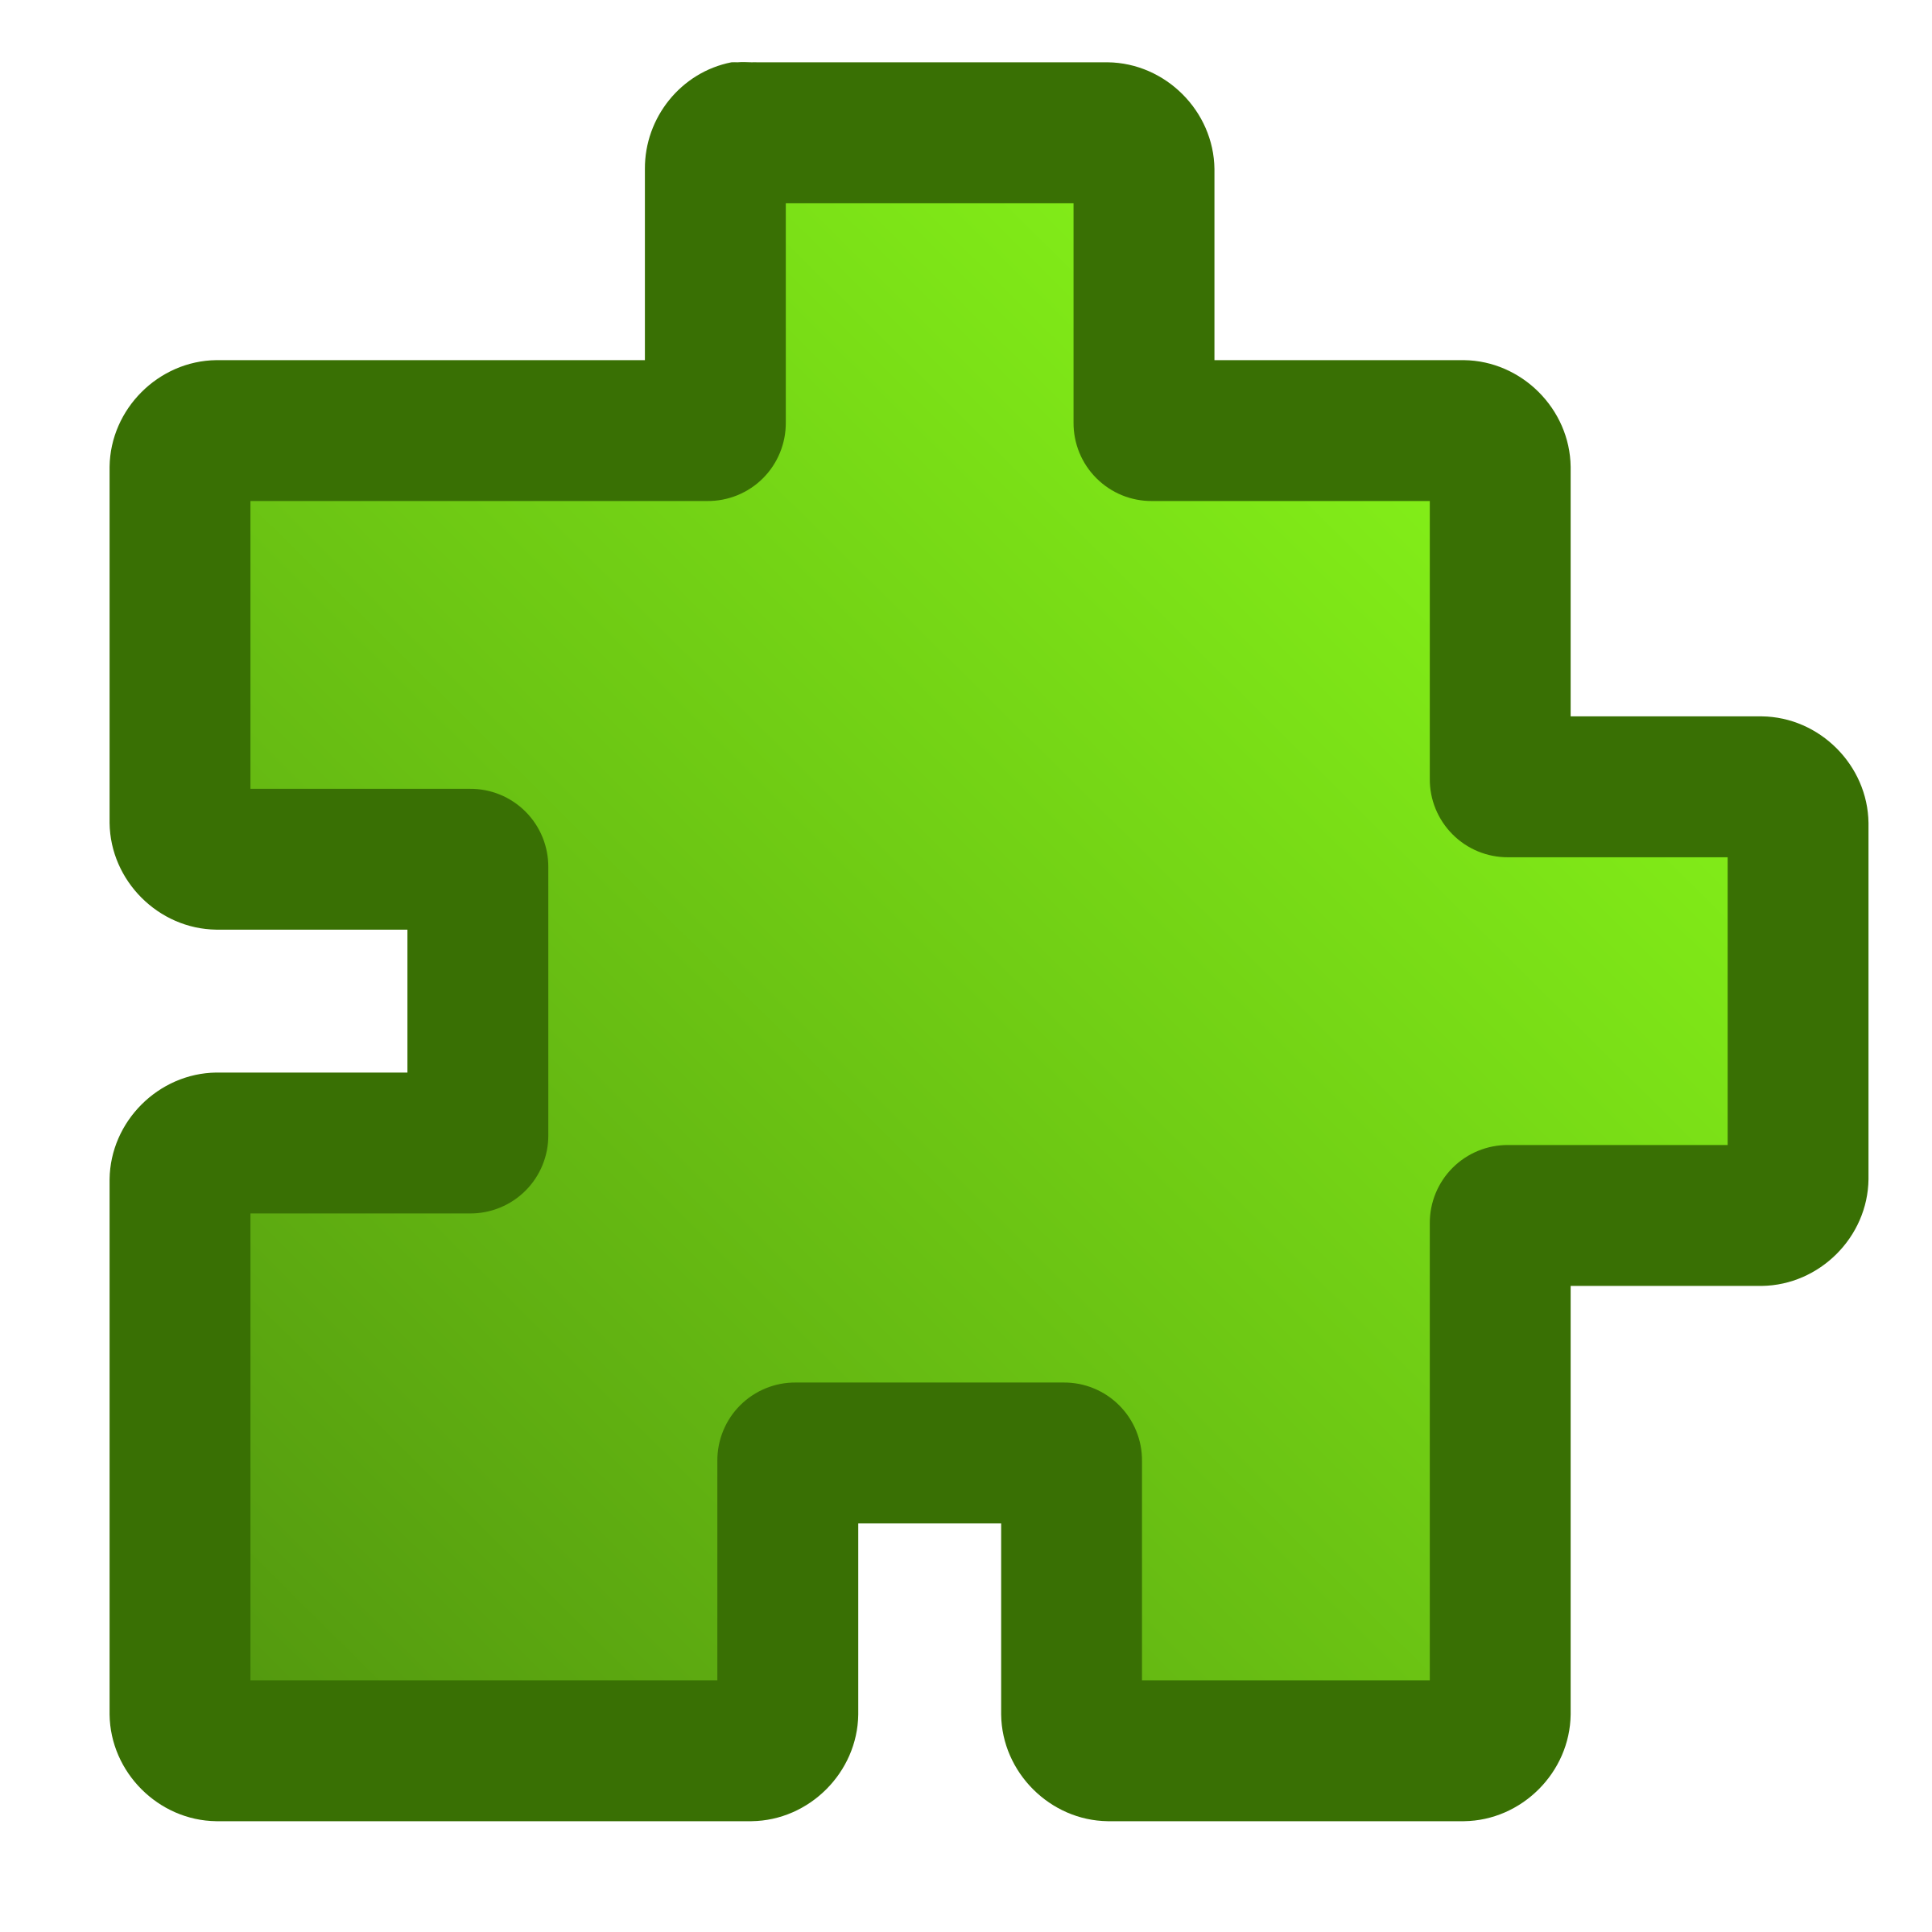 icon-puzzle-green by jean_victor_balin